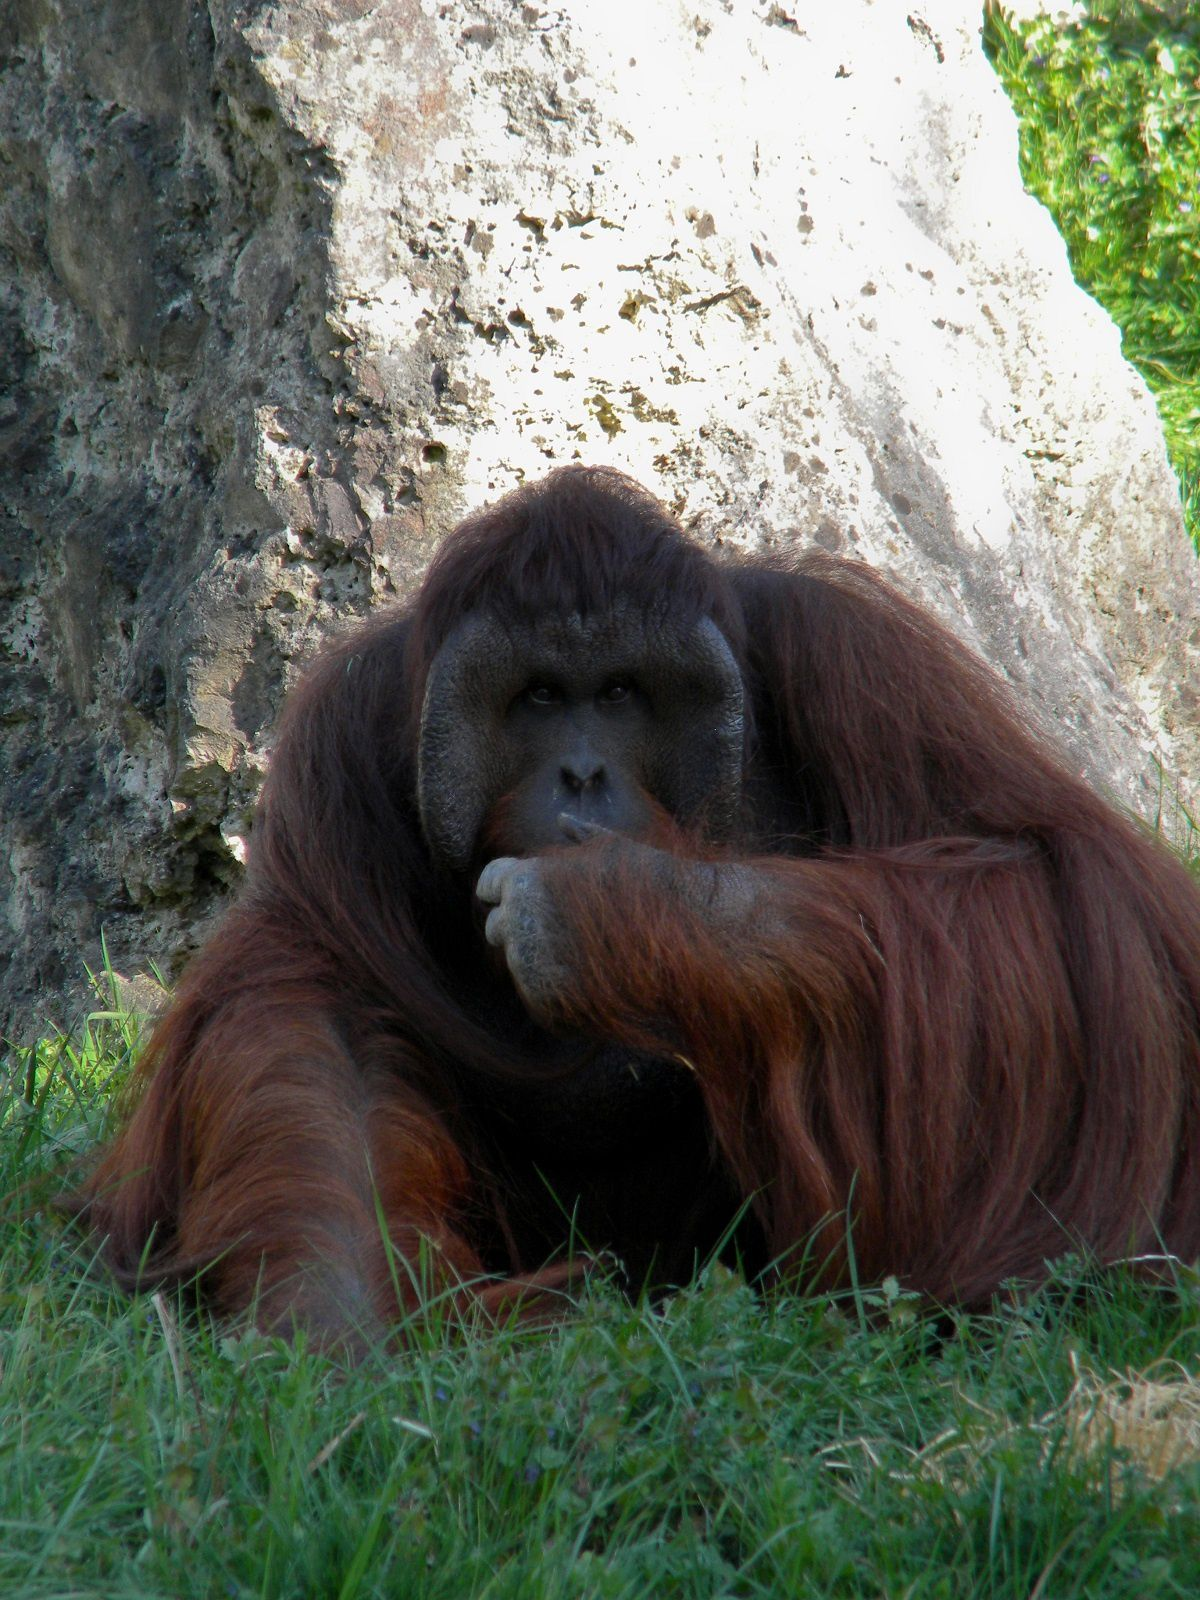 Singe au zoo de Beauval: (Photo rediffusée)